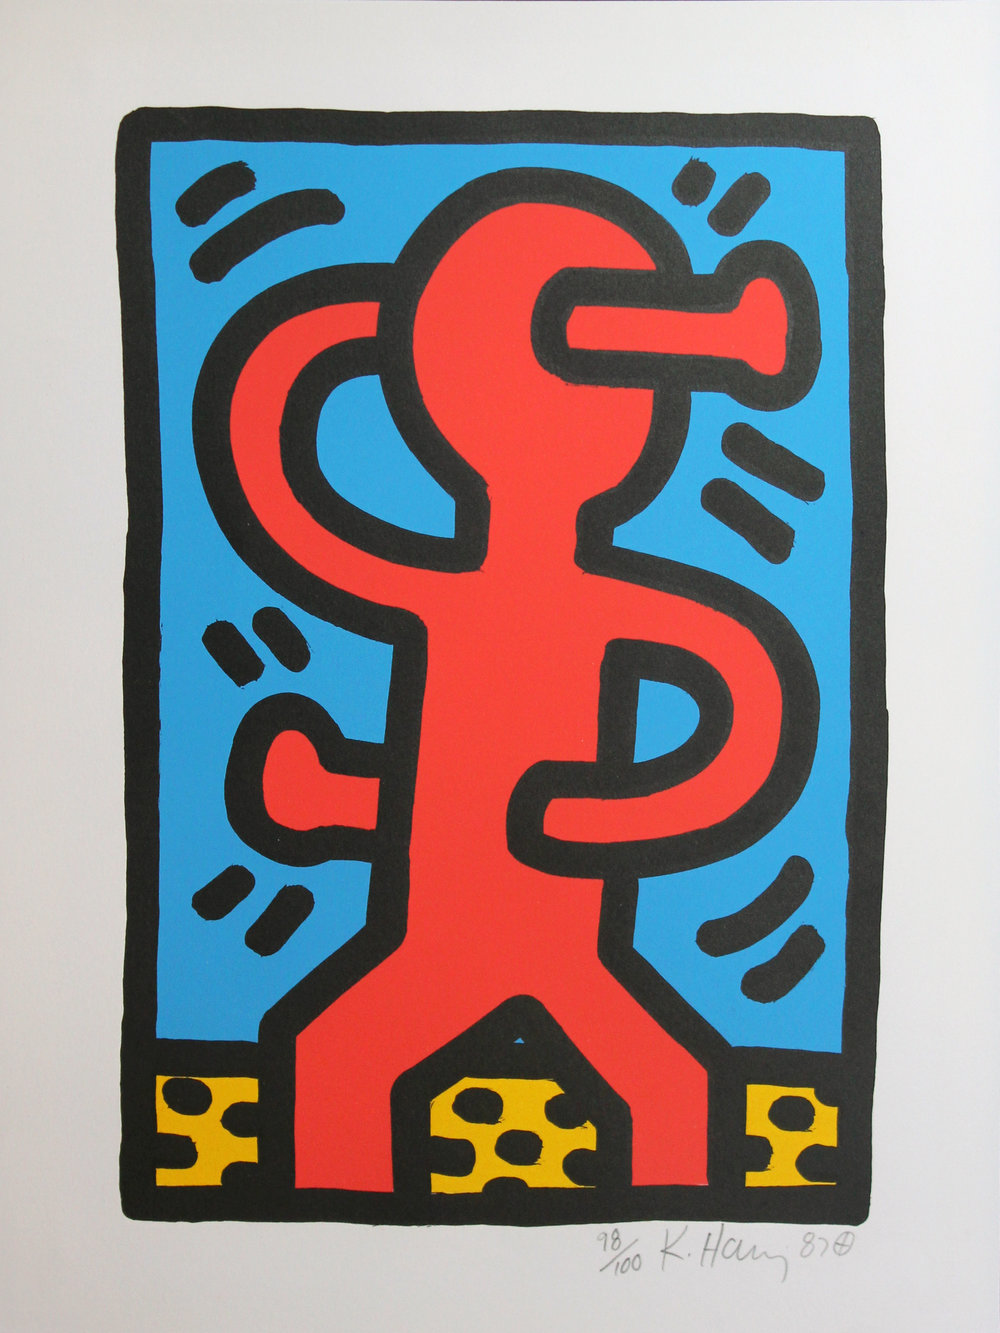 Keith Haring  Untitled, 1988 Silkscreen From the numbered edition of 100 Signed, numbered and dated in pencil on recto Image: 12 x 8.25 inches; Sheet: 15 x 11 inches; Framed: 20.5 x 16.75 inches Estimate: $5,000/$7,000